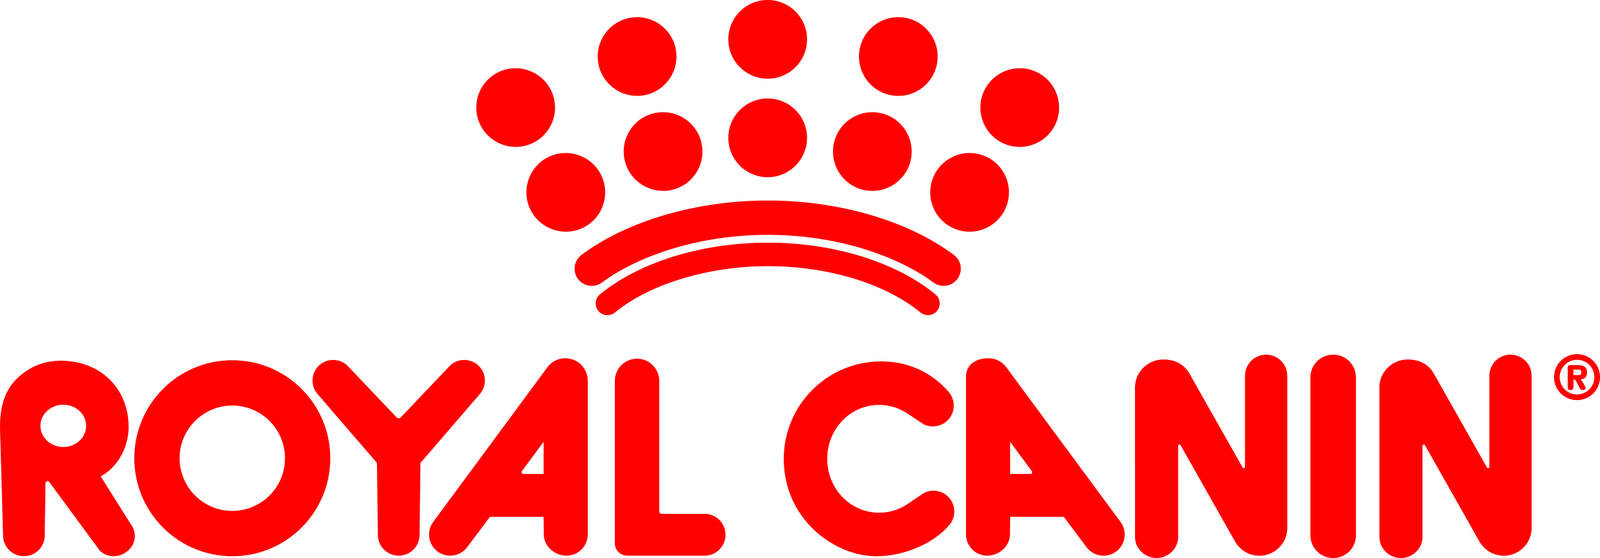 royal canin logo 01.02.2019